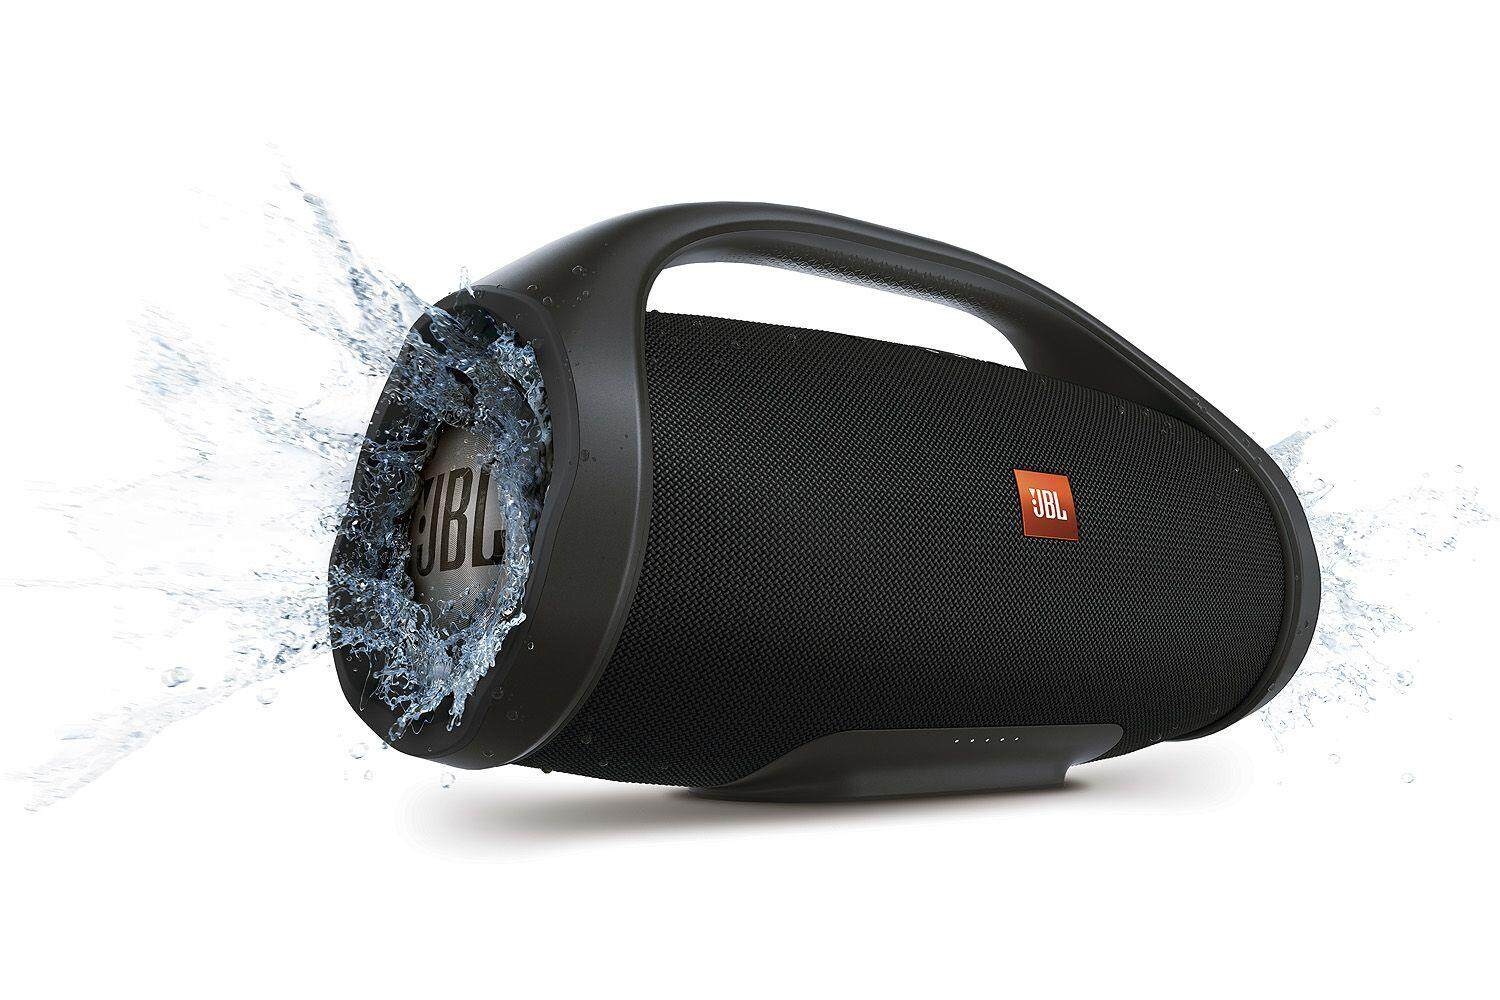 JBL BOOMBOX Cheapest Price Guranteed